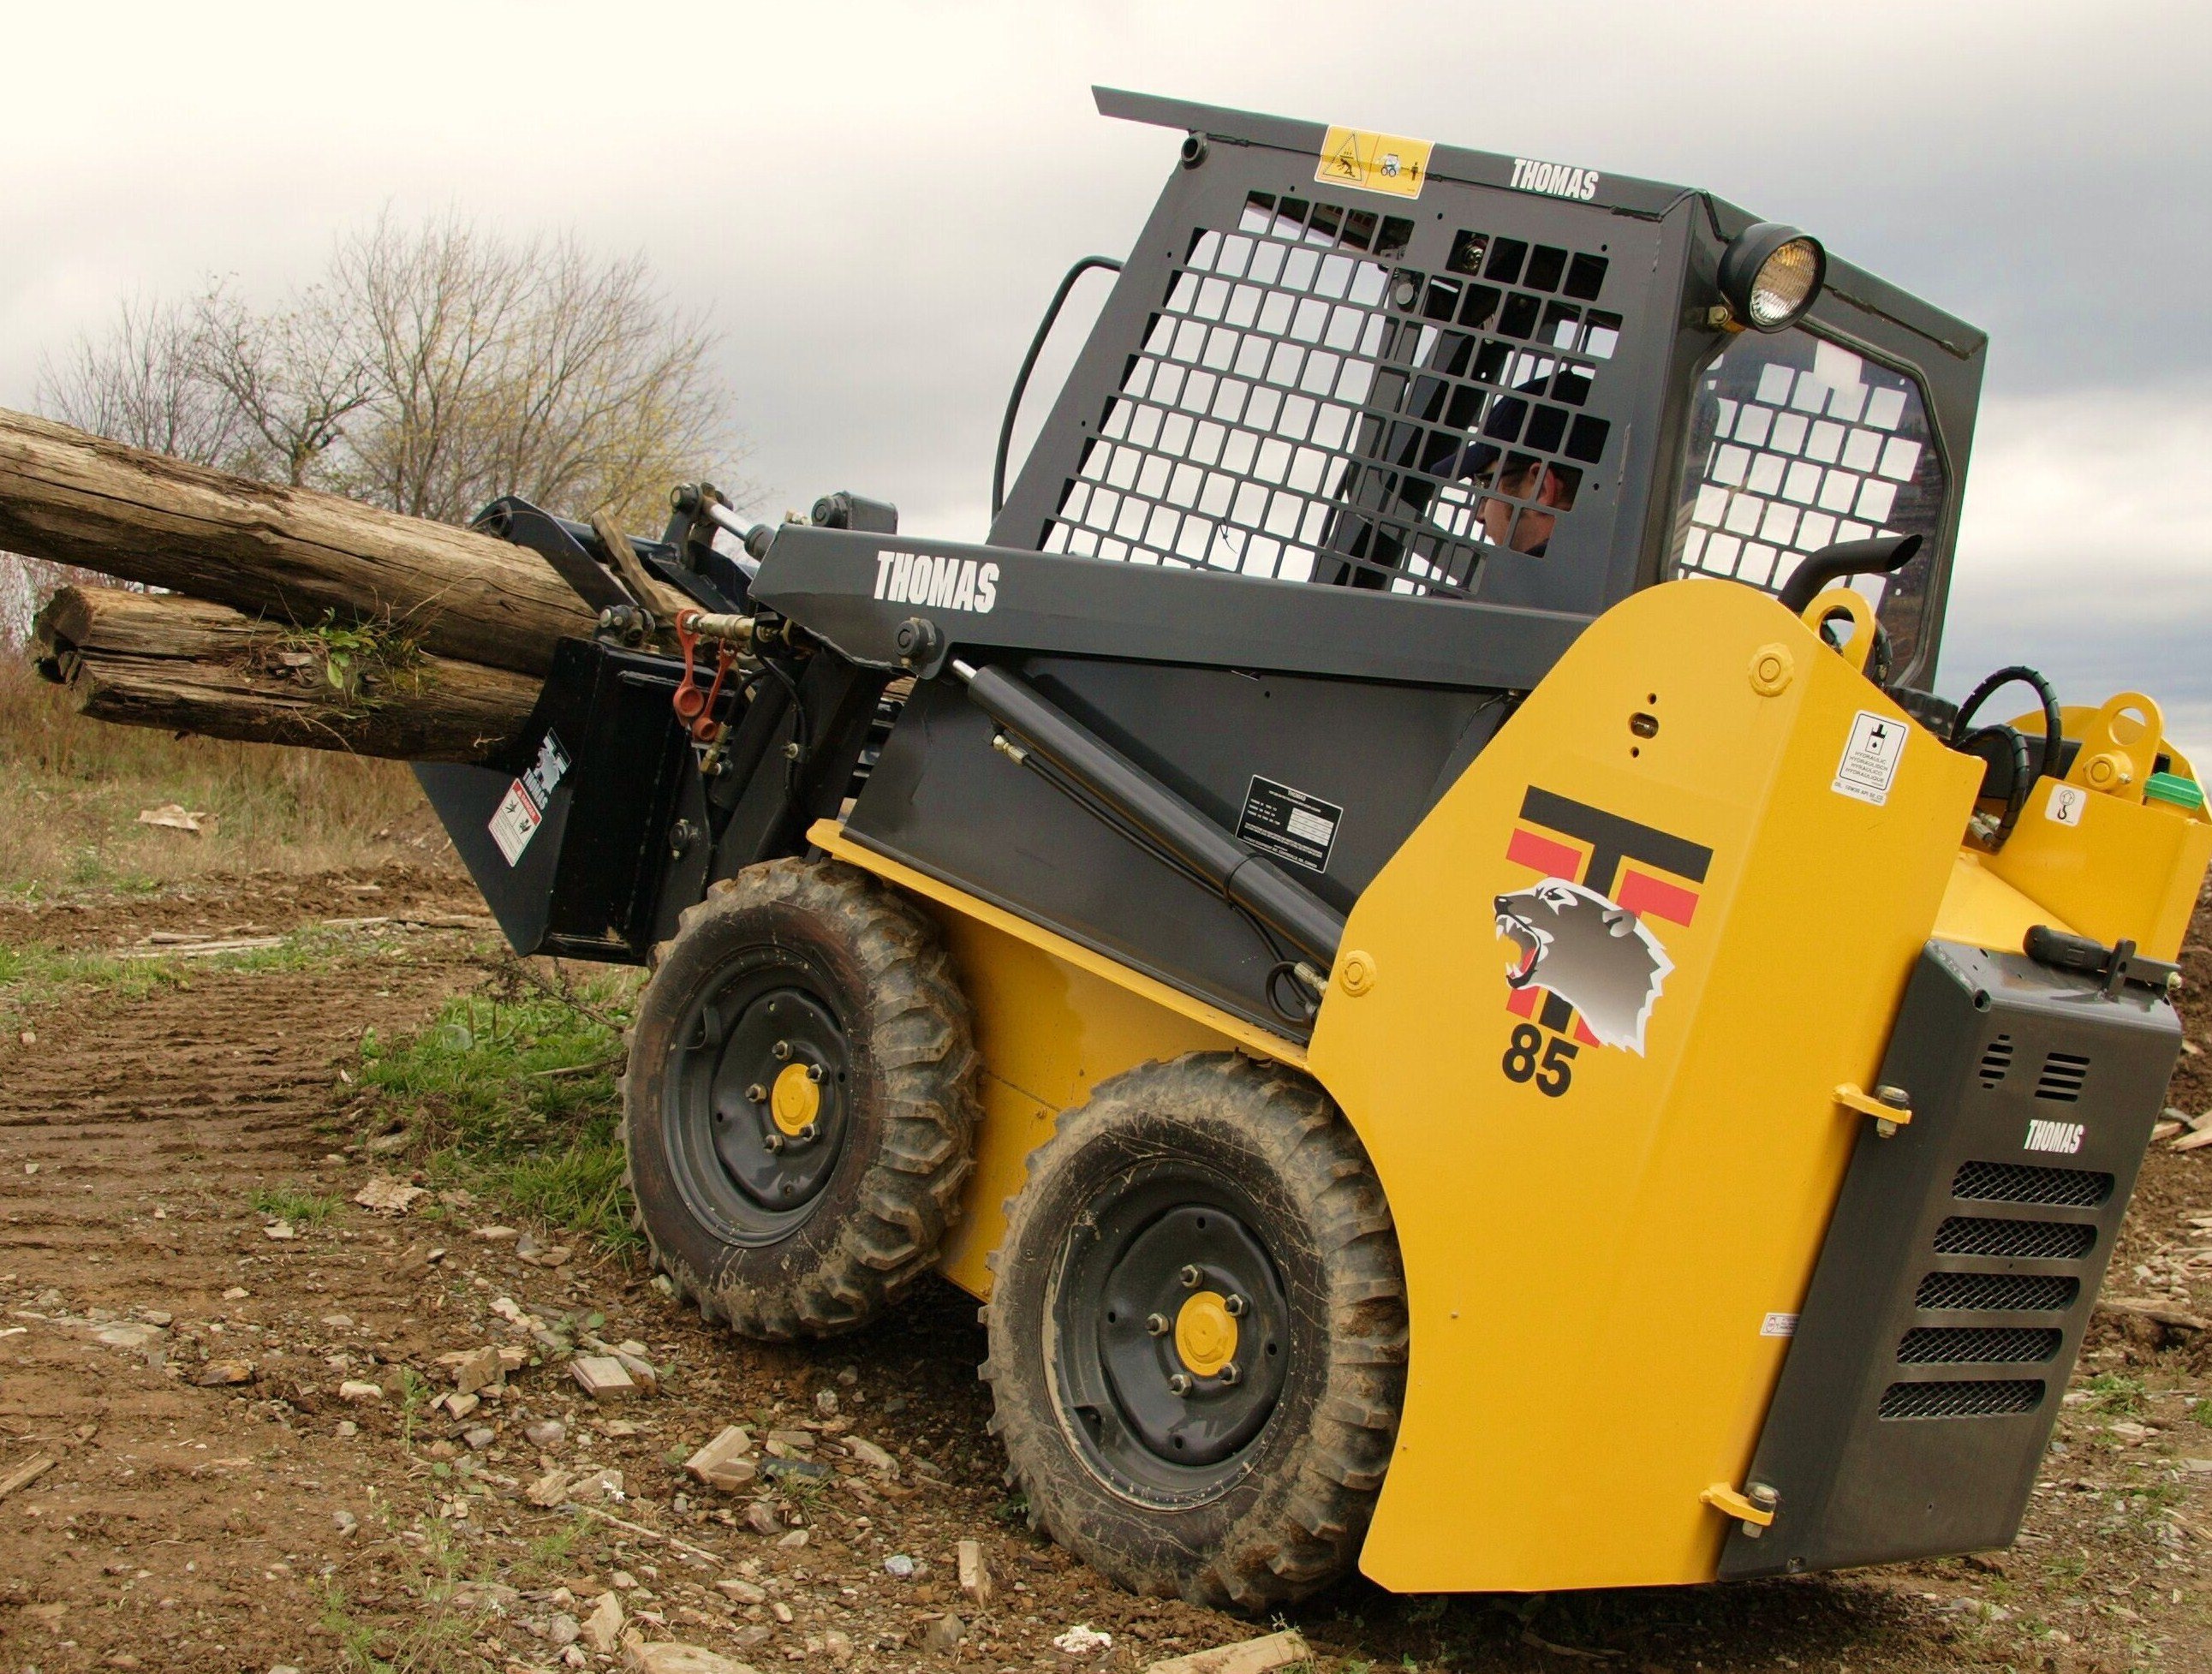 Thomas Skid Steer Loaders on the FarmThomas Equipment's Model 85  http://www.thomasloaders.com[Skid Steer] Loader combines strength and  agility on the farm.